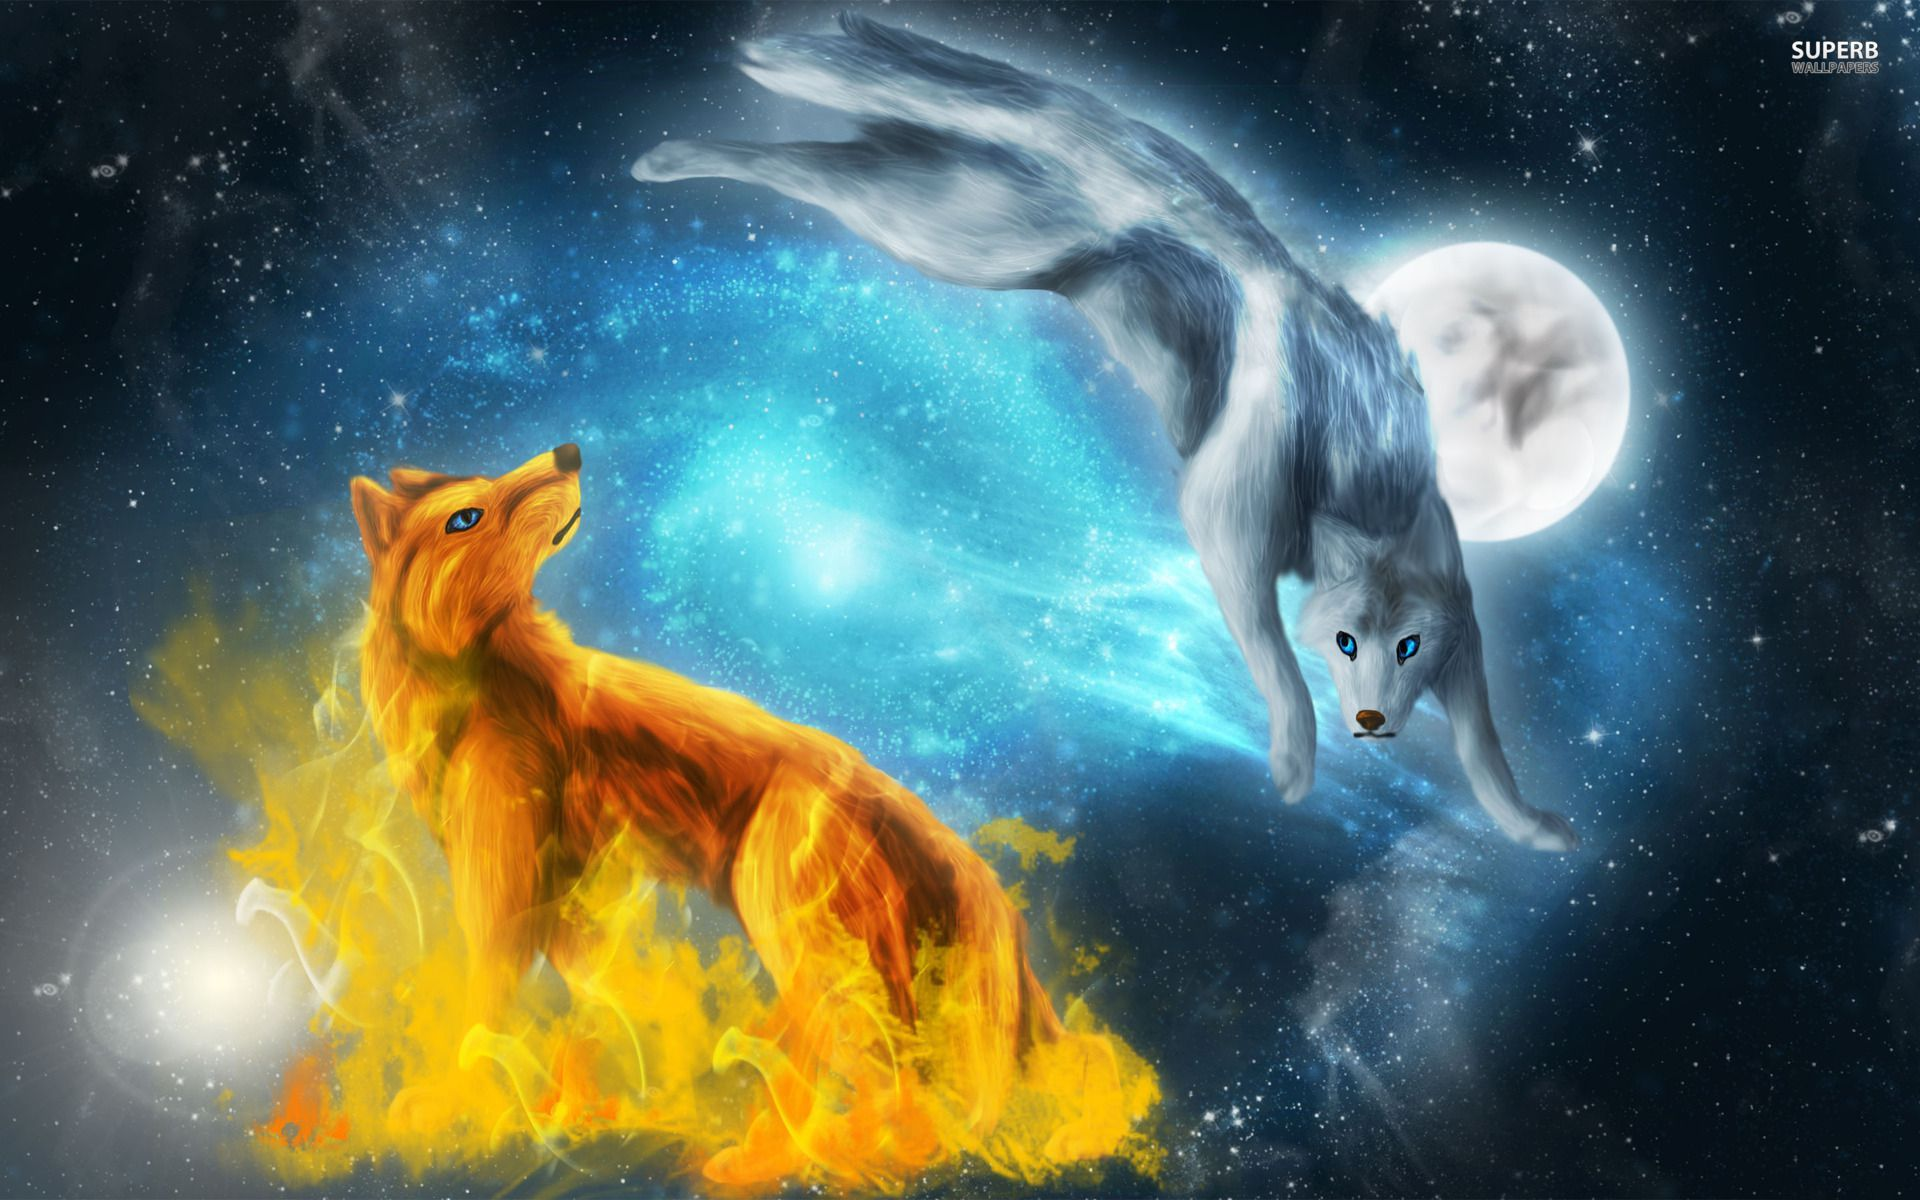 1920x1200 Animated Wolf Wallpaper Best HD Wallpapers 1920 1080